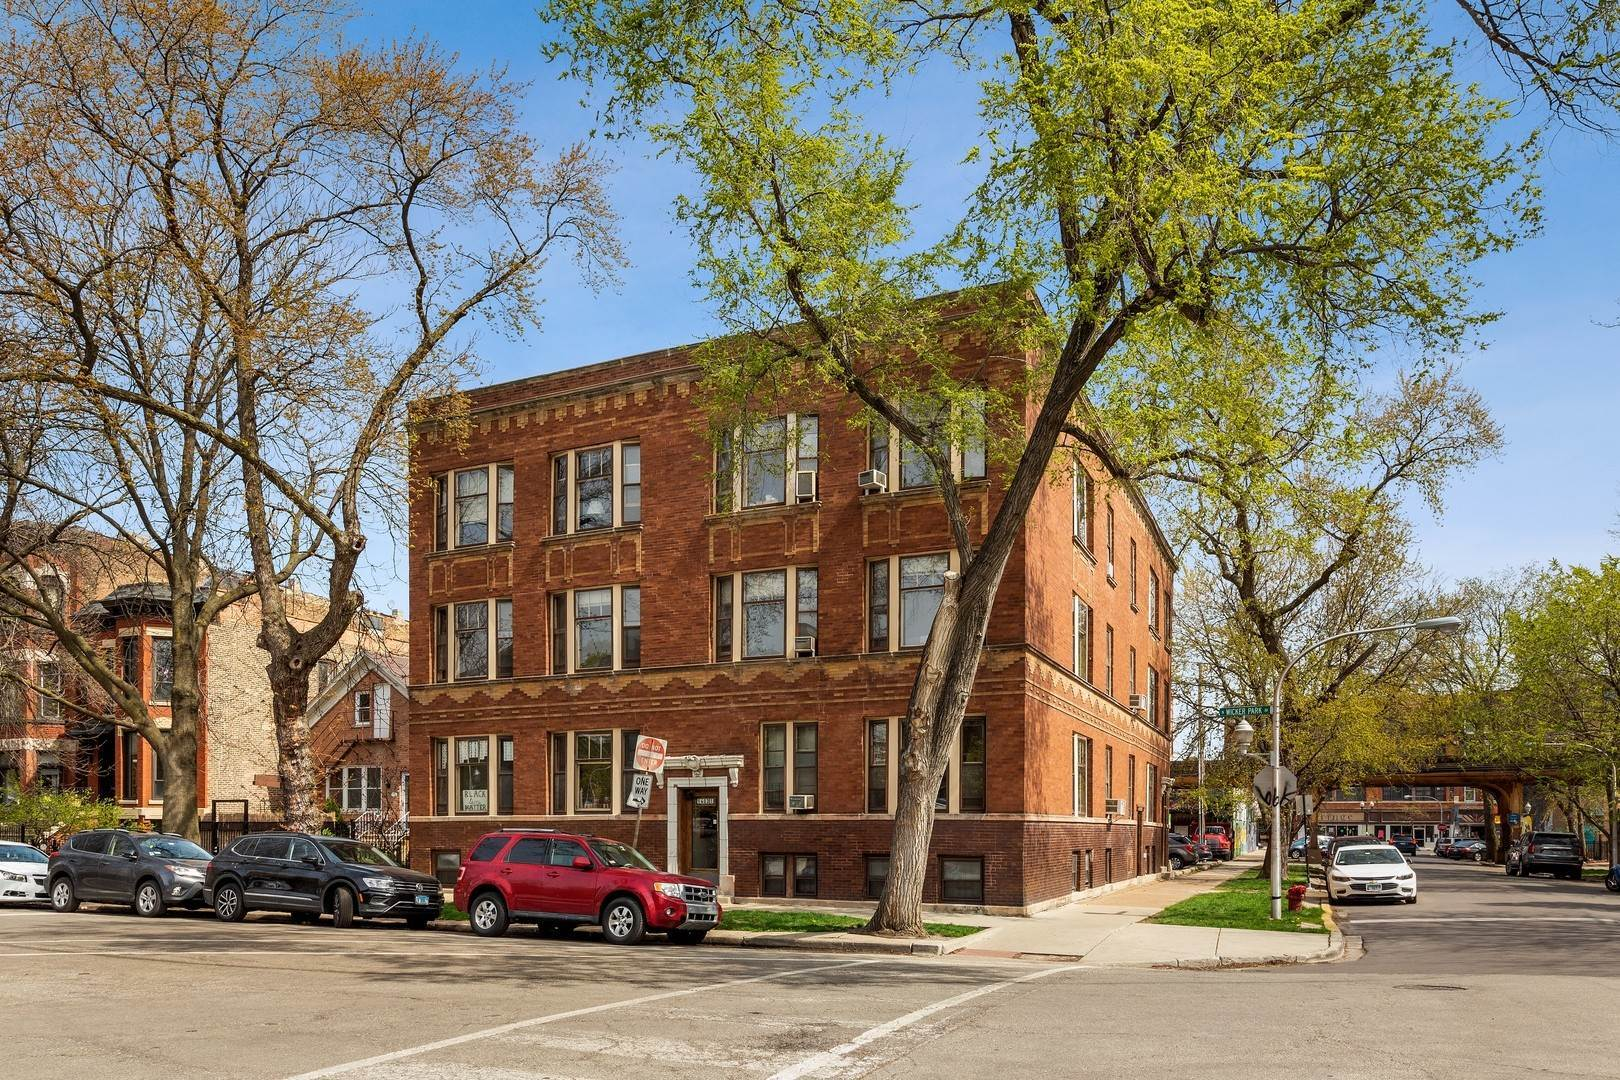 Commercial for Sale at 1401 N Wicker Park Avenue Chicago, Illinois 60622 United States